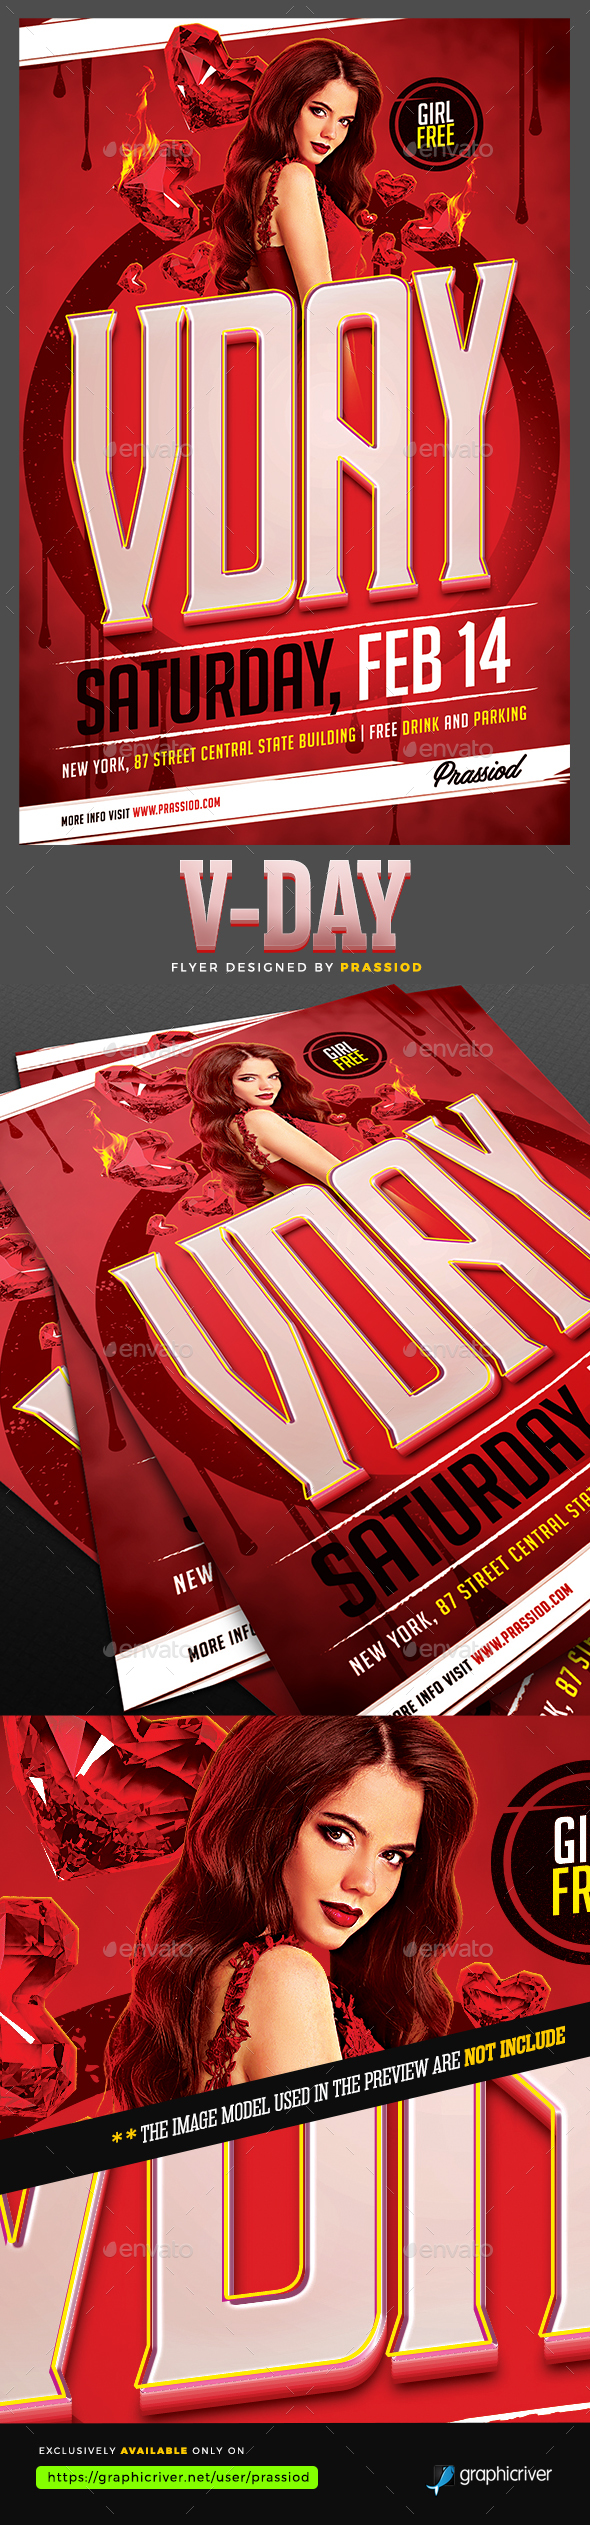 V-Day Flyer Template - Clubs & Parties Events